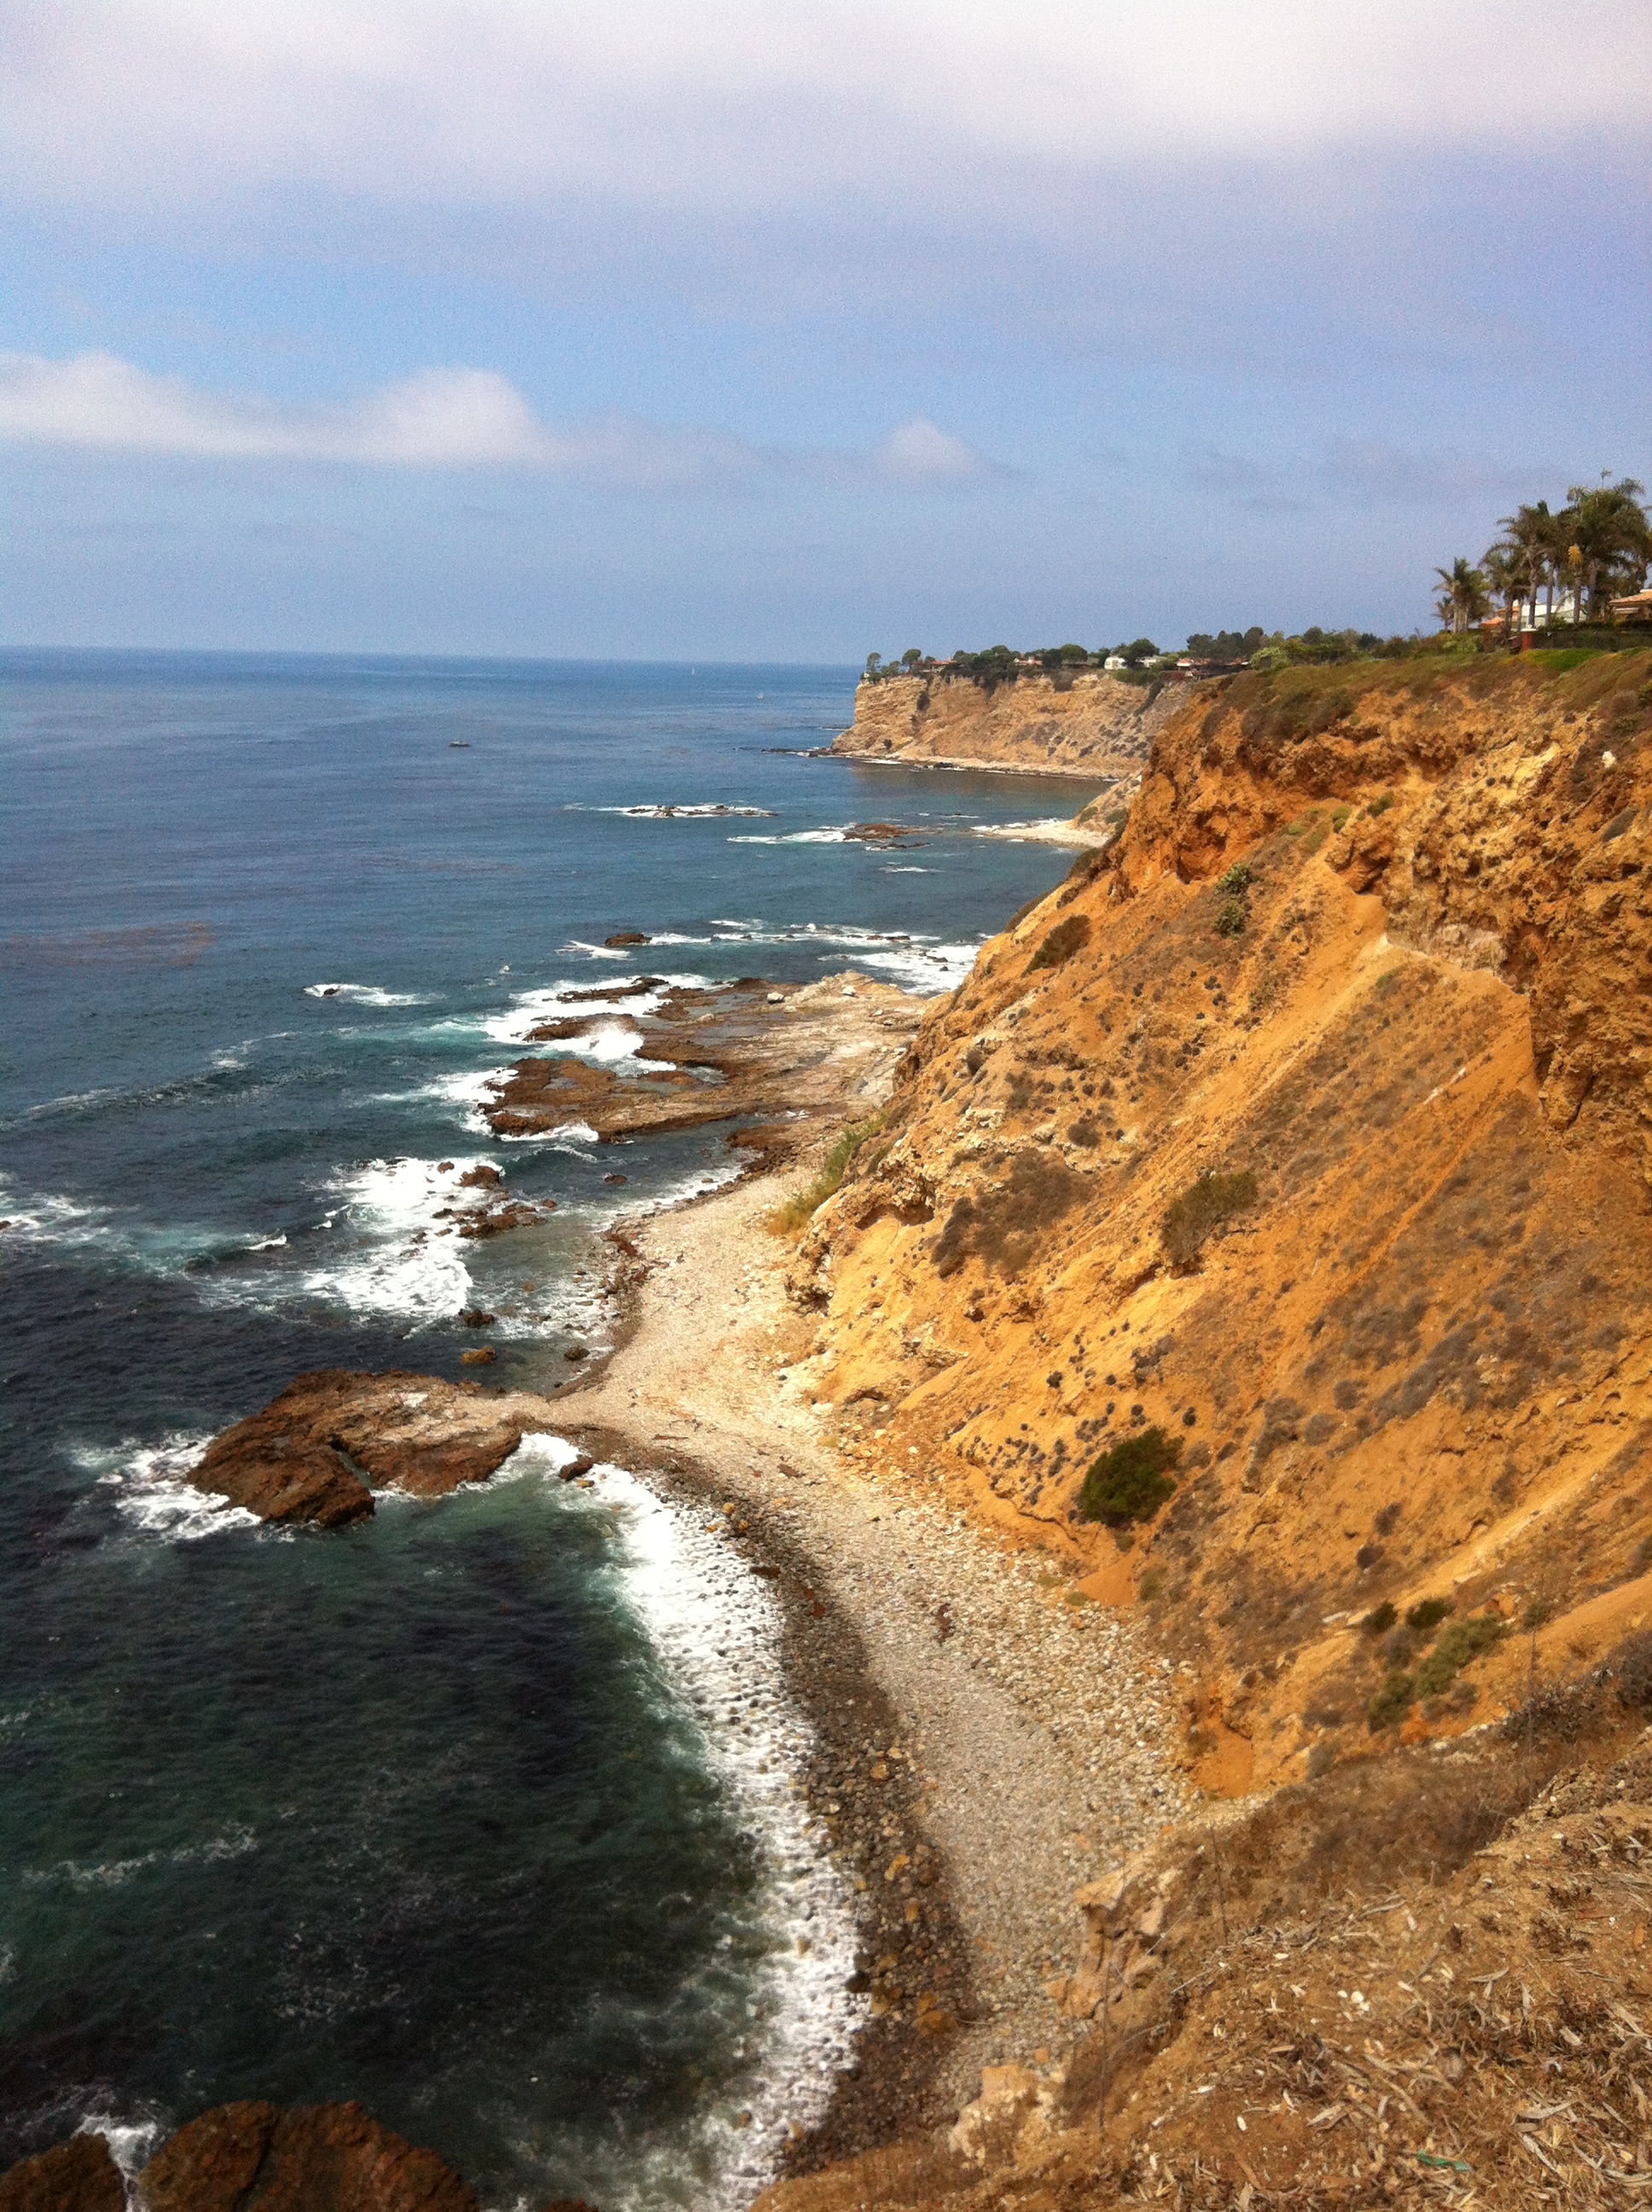 The Palos Verdes coast